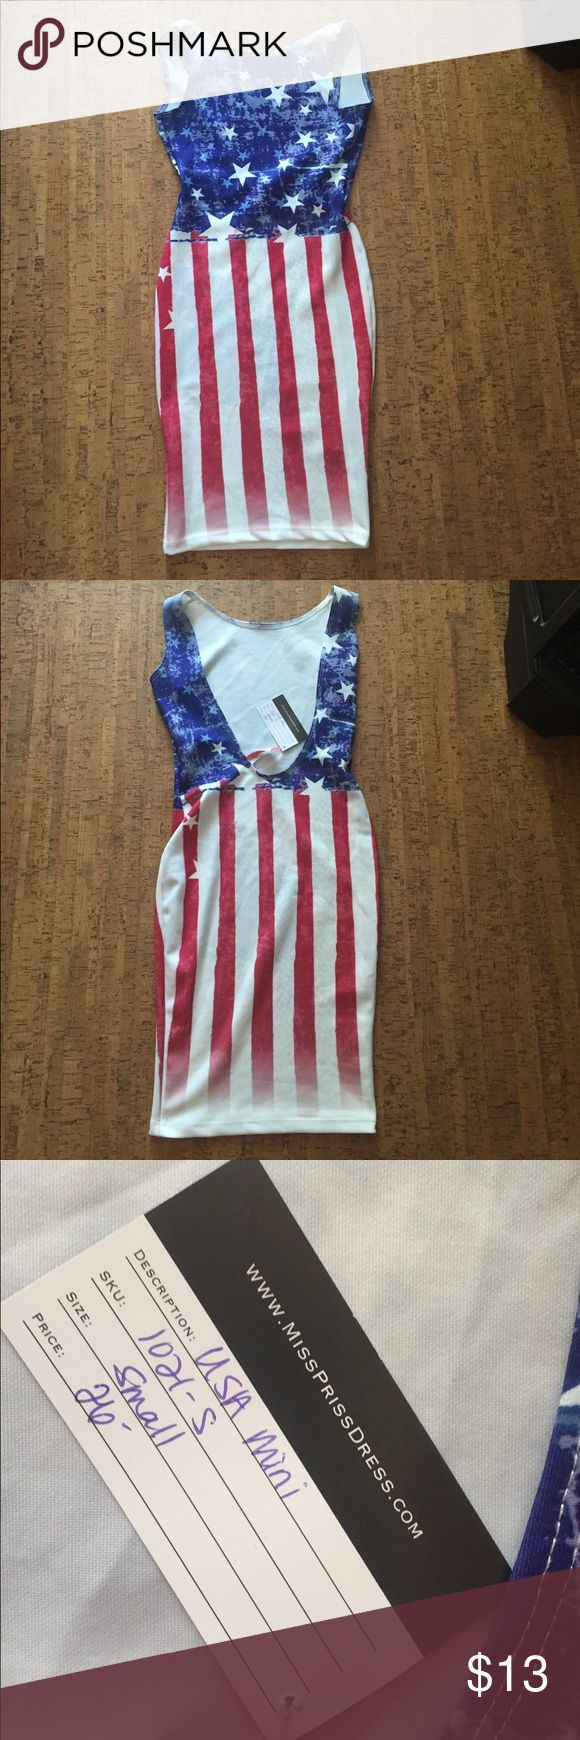 American Flag dress Reposhing this Cute American flag dress. It's a size smaller than I need. Dresses Mini